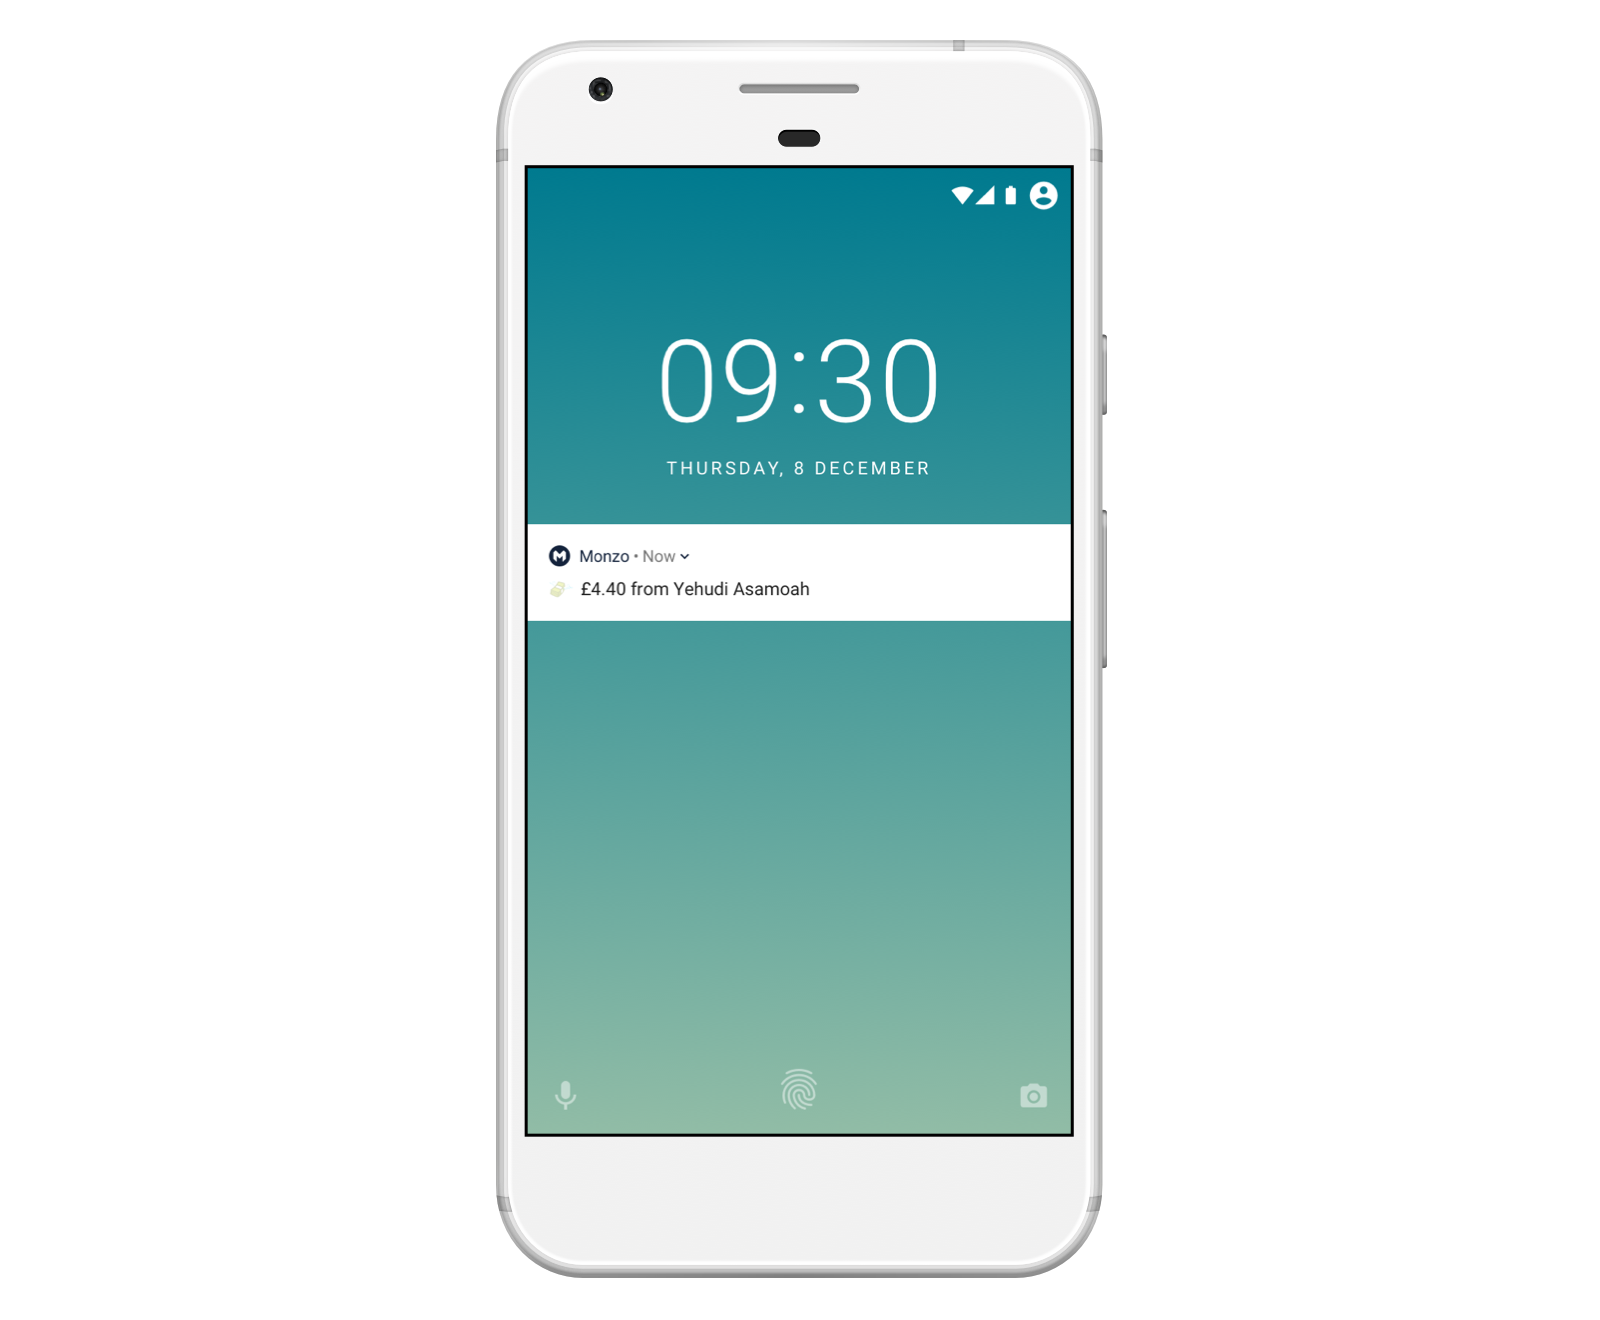 Image of a smartphone showing an instant notification from the Monzo app